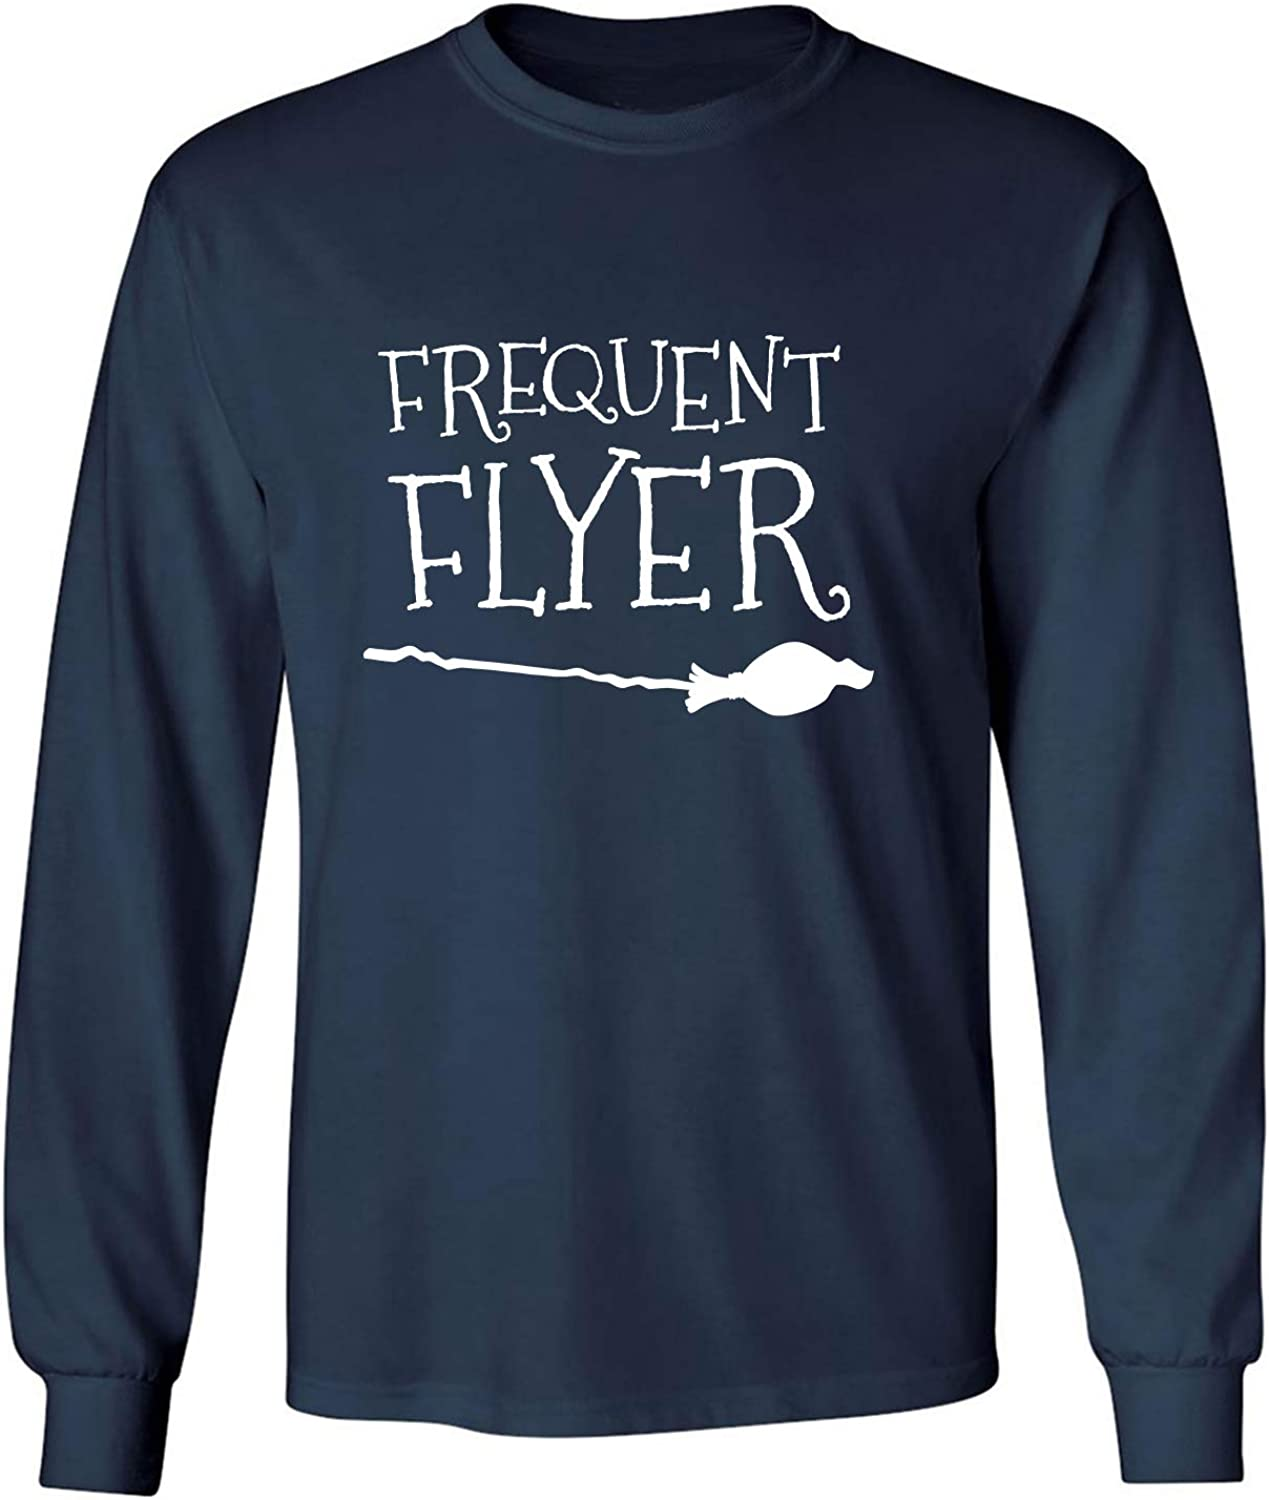 Frequent Flyer Adult Long Sleeve T-Shirt in Navy - XXXX-Large